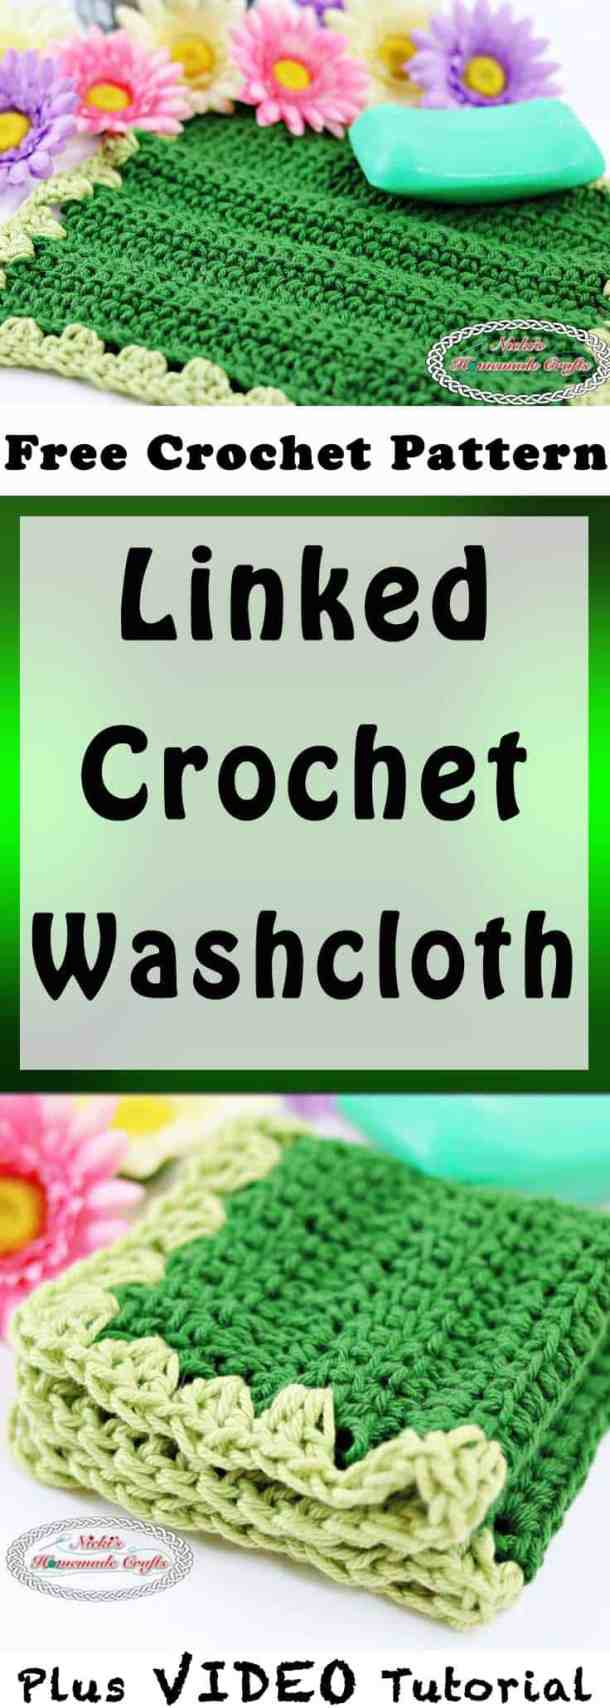 Linked Crochet Washcloth which is a Free Crochet Pattern by Nicki's Homemade Crafts; also showing flowers and bathroom soap.